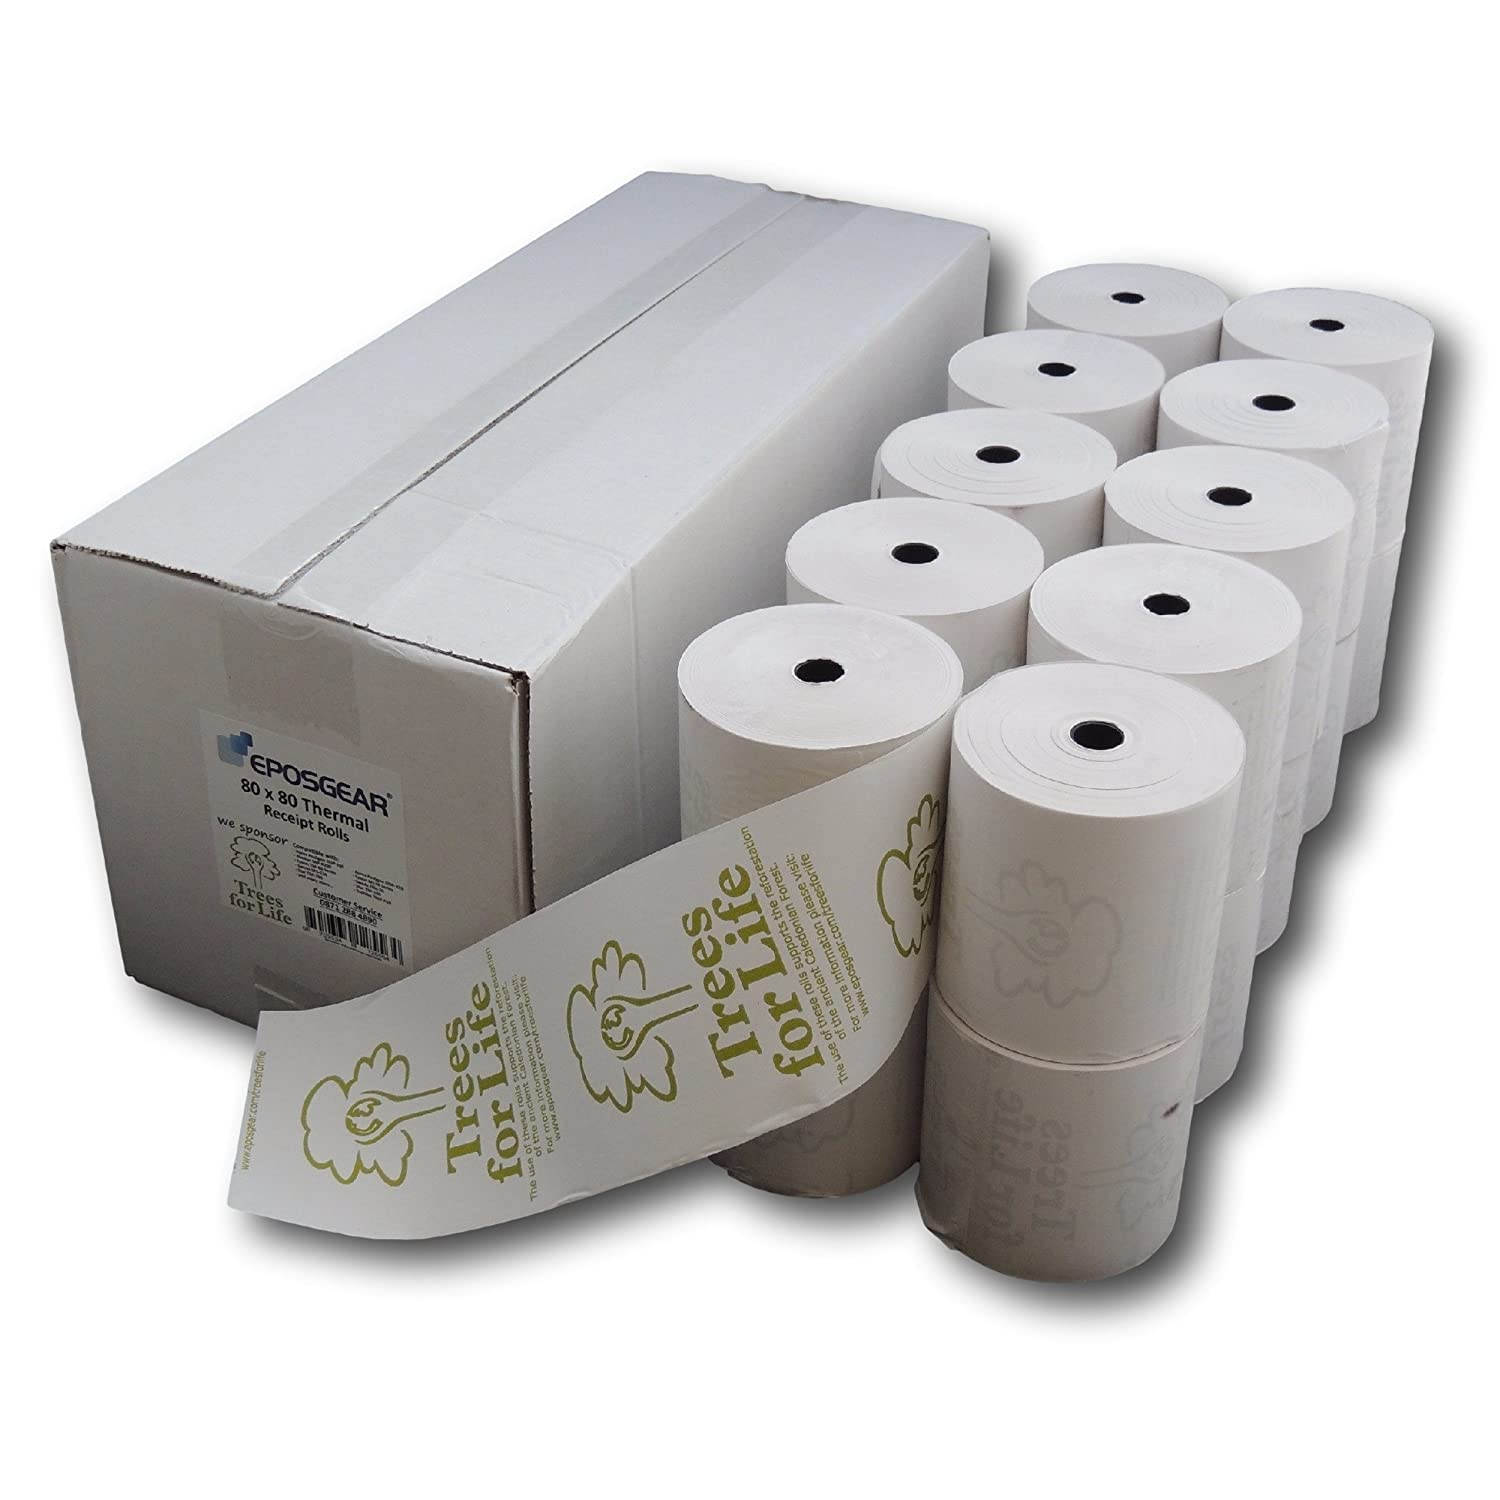 Supporting Trees for Life EPOSGEAR/® 80mm x 80mm 80x80 Printed Thermal Paper Till Cash Register Machine Receipt EPOS System Printer Rolls 40